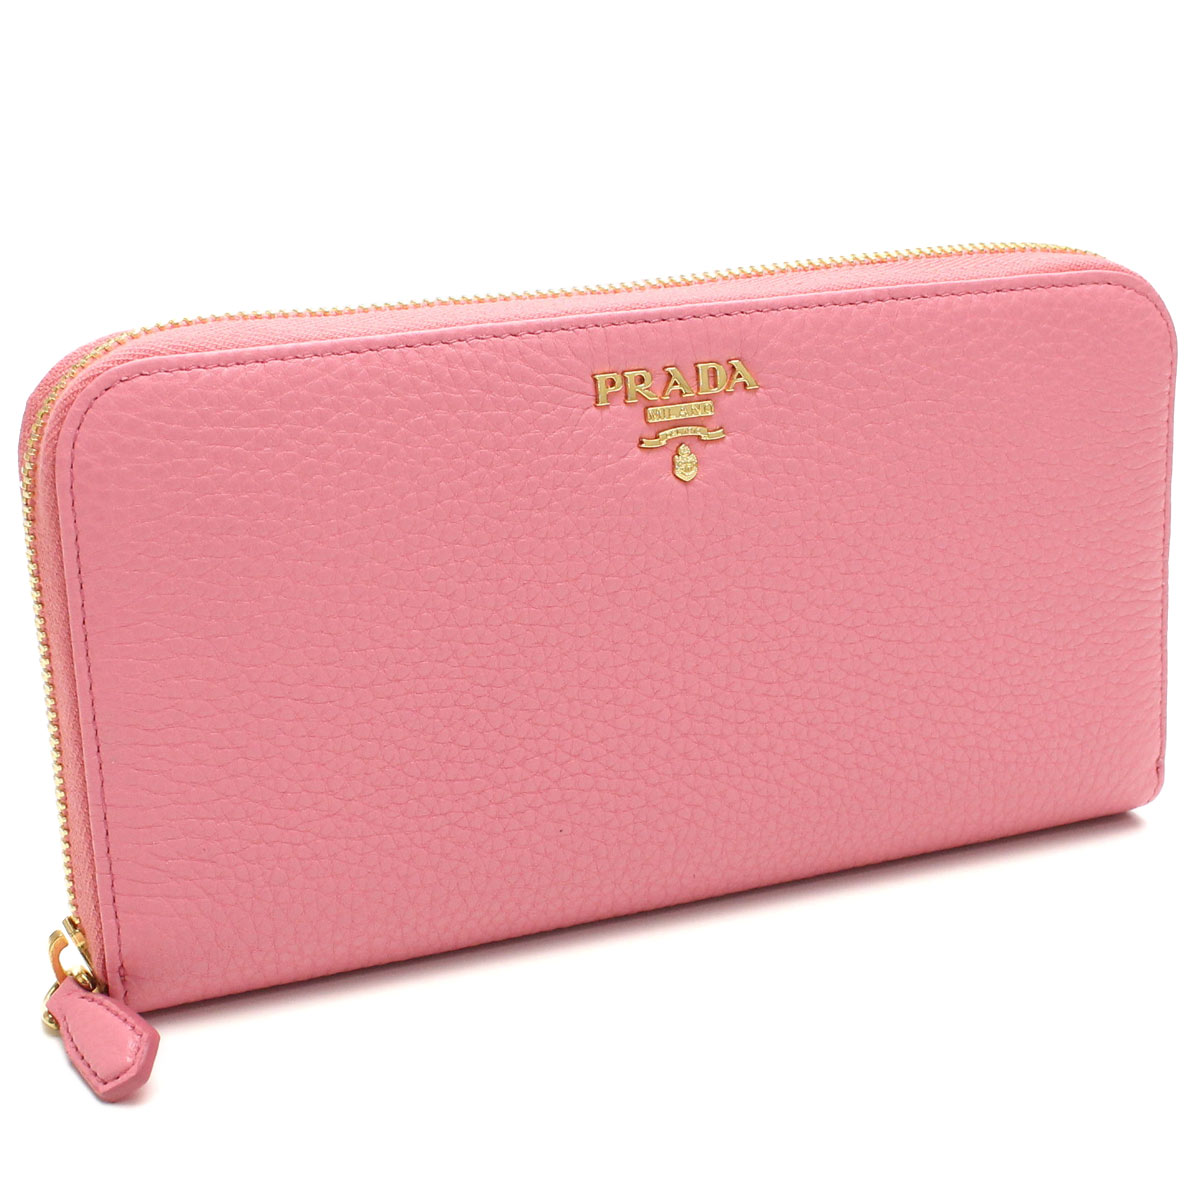 5274dfeded55 Bighit The total brand wholesale: Prada outlet PRADA (OUTLET) wallet large  zip around 1ML506-O-2E3A-F0638 BEGONIA pink( taxfree/send by EMS/authentic/A  ...